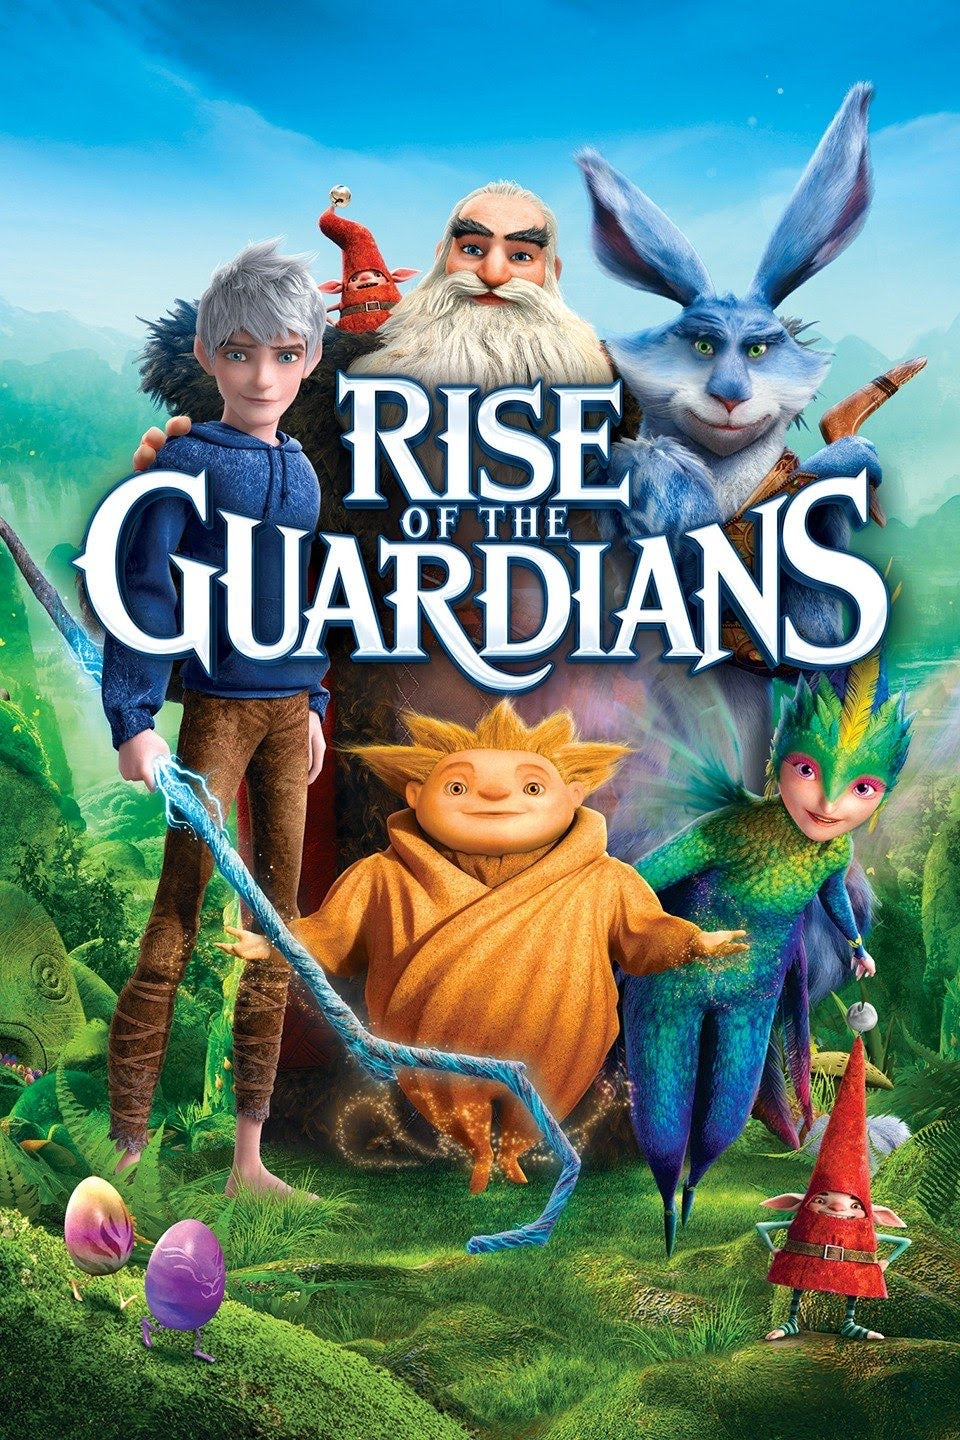 Rise of the Guardians (2012) iTunes HD redemption only